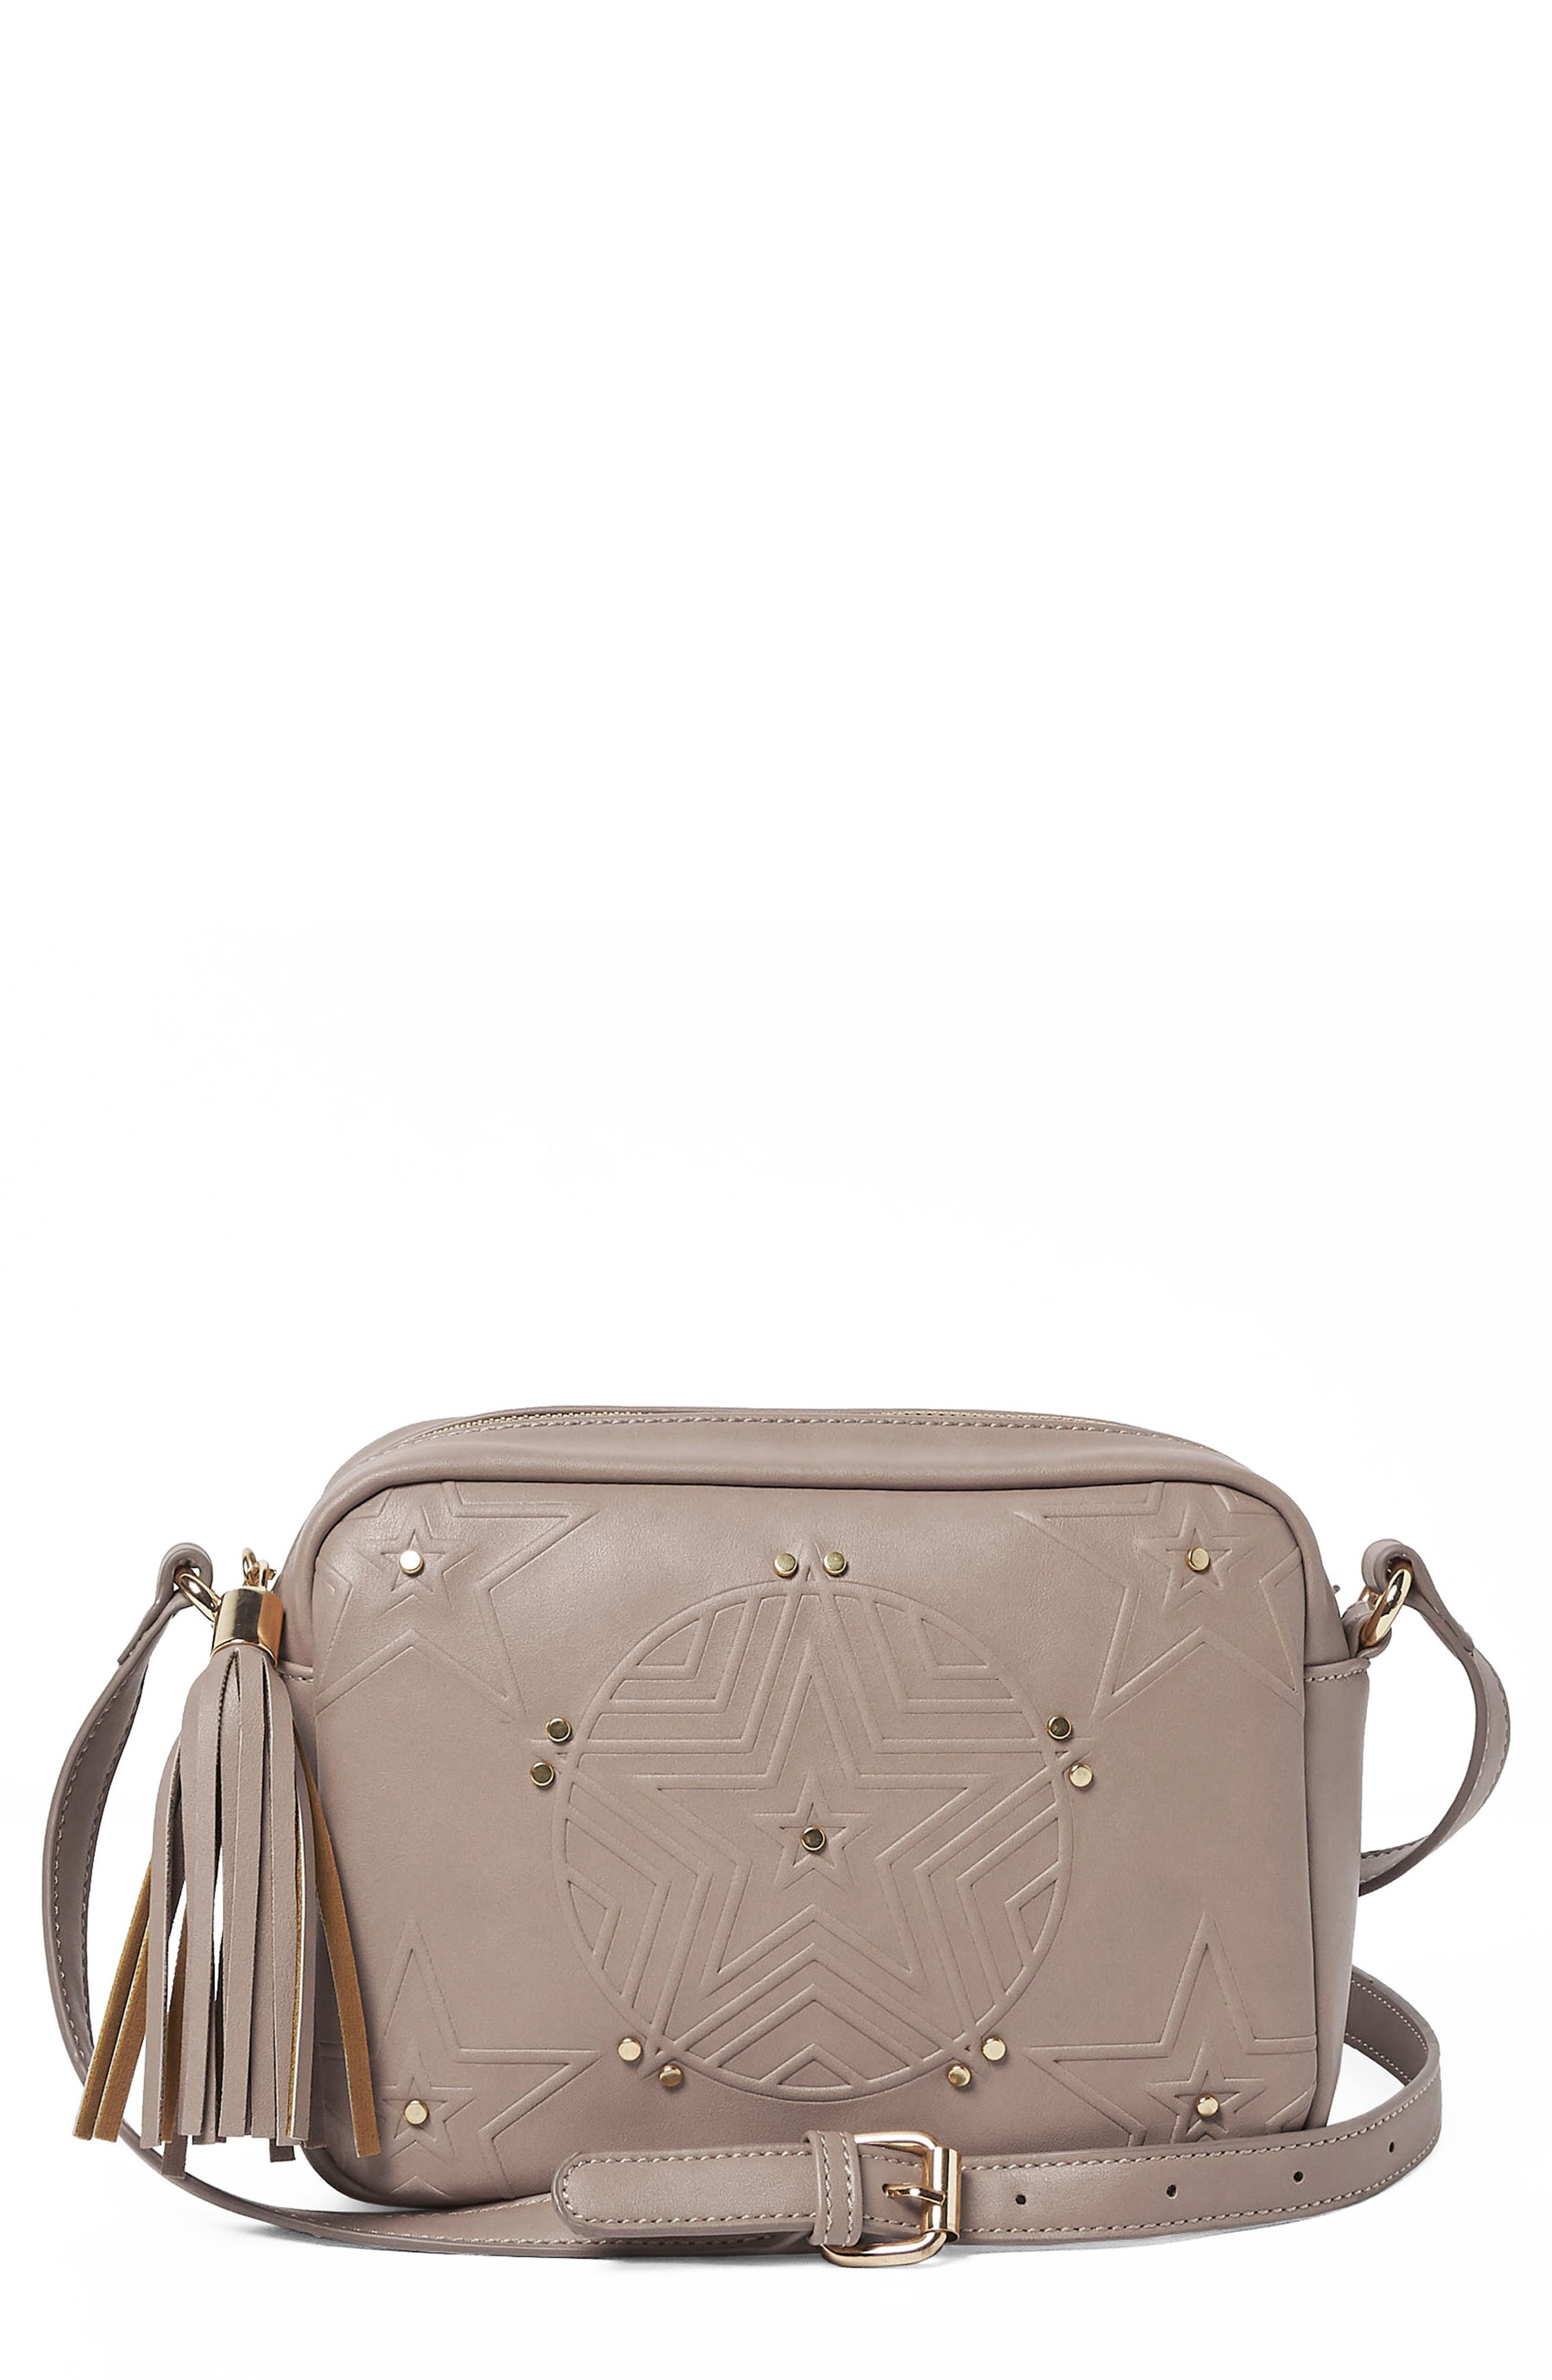 Urban Originals STARGAZER VEGAN LEATHER CROSSBODY BAG - GREY